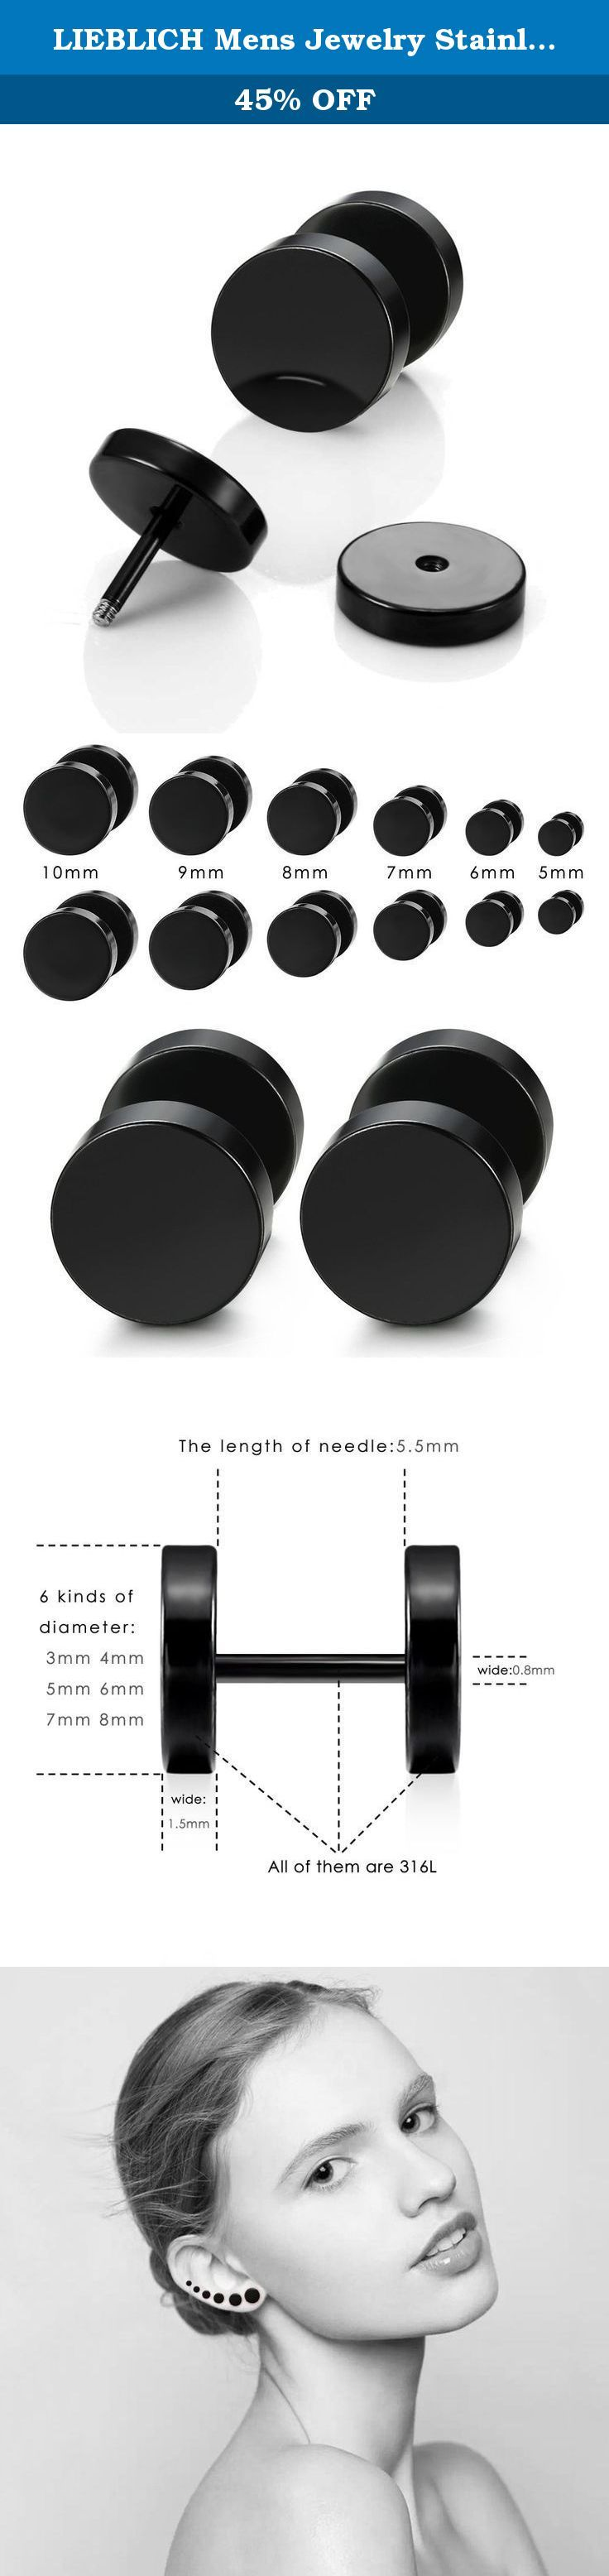 LIEBLICH Mens Jewelry Stainless Steel Black Stud Earrings Men Women Faux Gauges Ear Plugs Tunnel Earrings. These tunnel plug earrings give the illusion of larger plugs without stretching your ear holes. They screw on, cleans easily and are perfect for first time plug users. They work as either men earrings or as lady earrings. These black plated anodized stainless steel screw earrings are 5mm, 6mm, 7mm, 8mm, 9mm or 10mm in diameter. Multi sizes for endless style opportunities. Caring for...